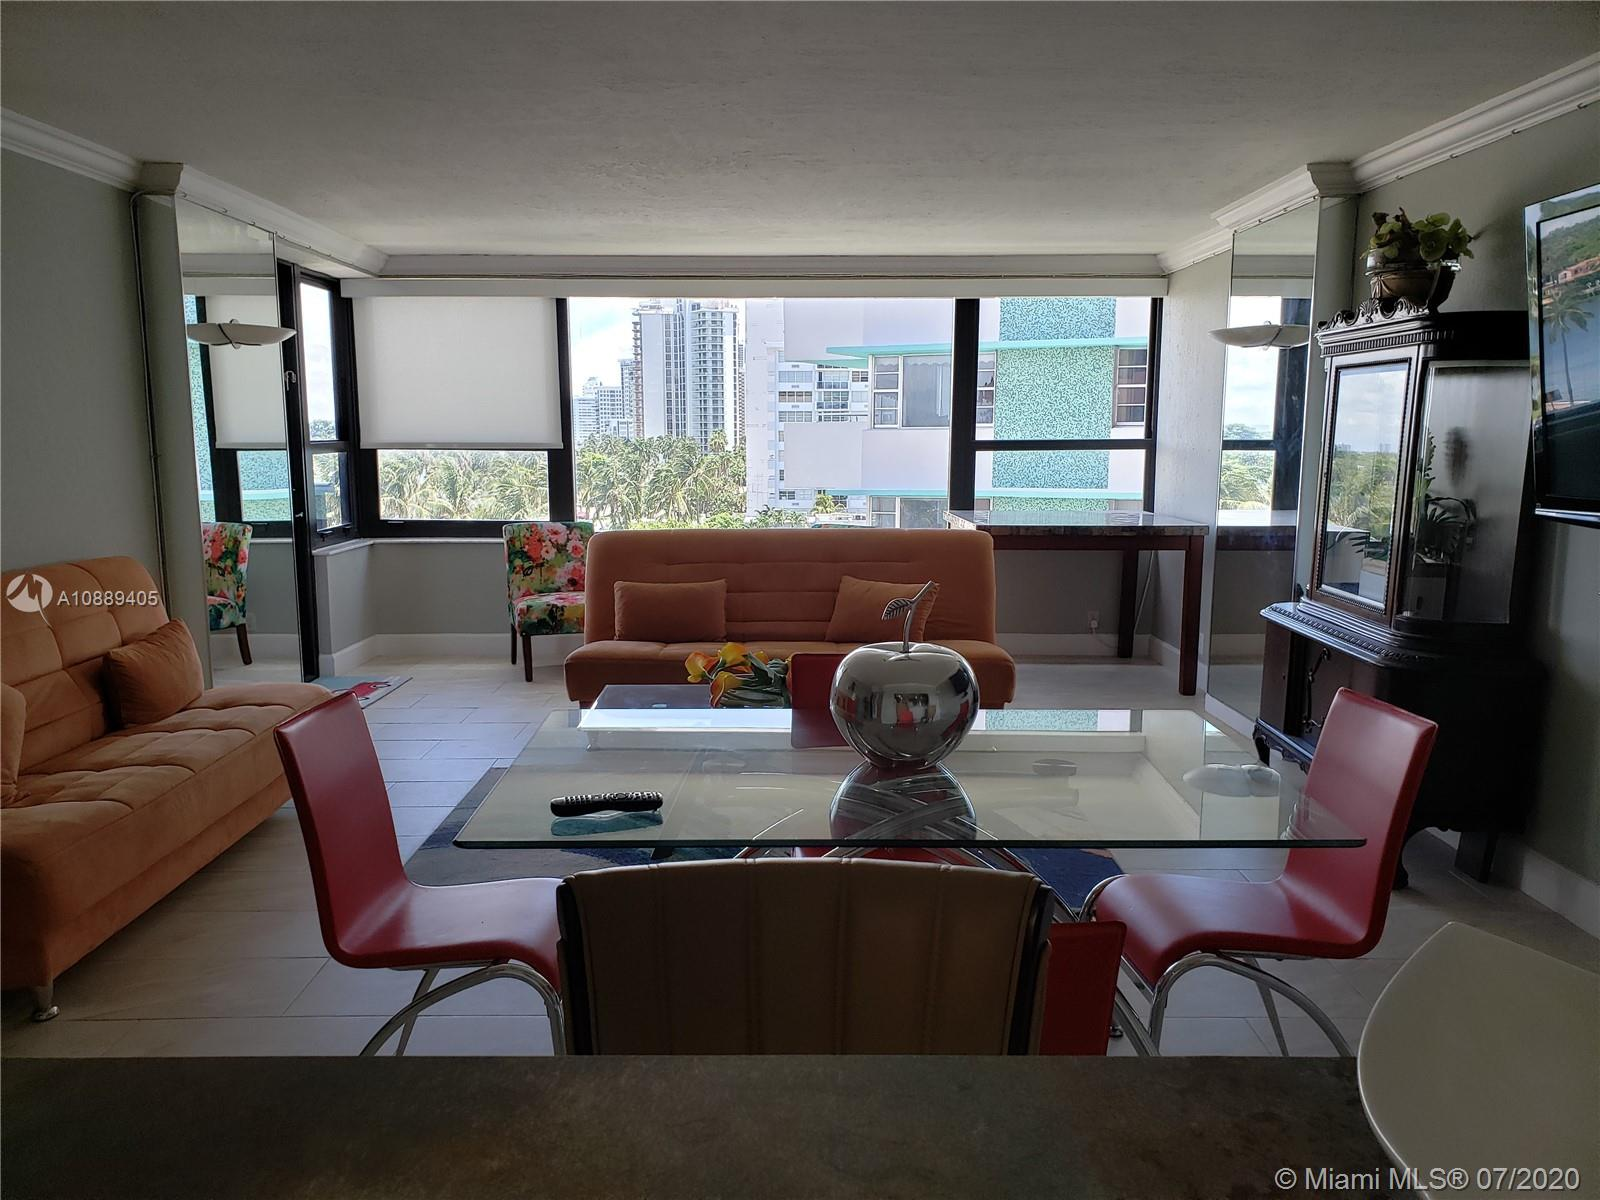 Incredible opportunity to purchase a corner unit. This very comfortable 2 bedroom 2 bath is ready! You have beautiful Inter Coastal views while you still have Ocean views. You can use it for yourself and make it home or rent it out, yes, daily rentals are in high demand in Miami Beach. You have to see it to believe it!